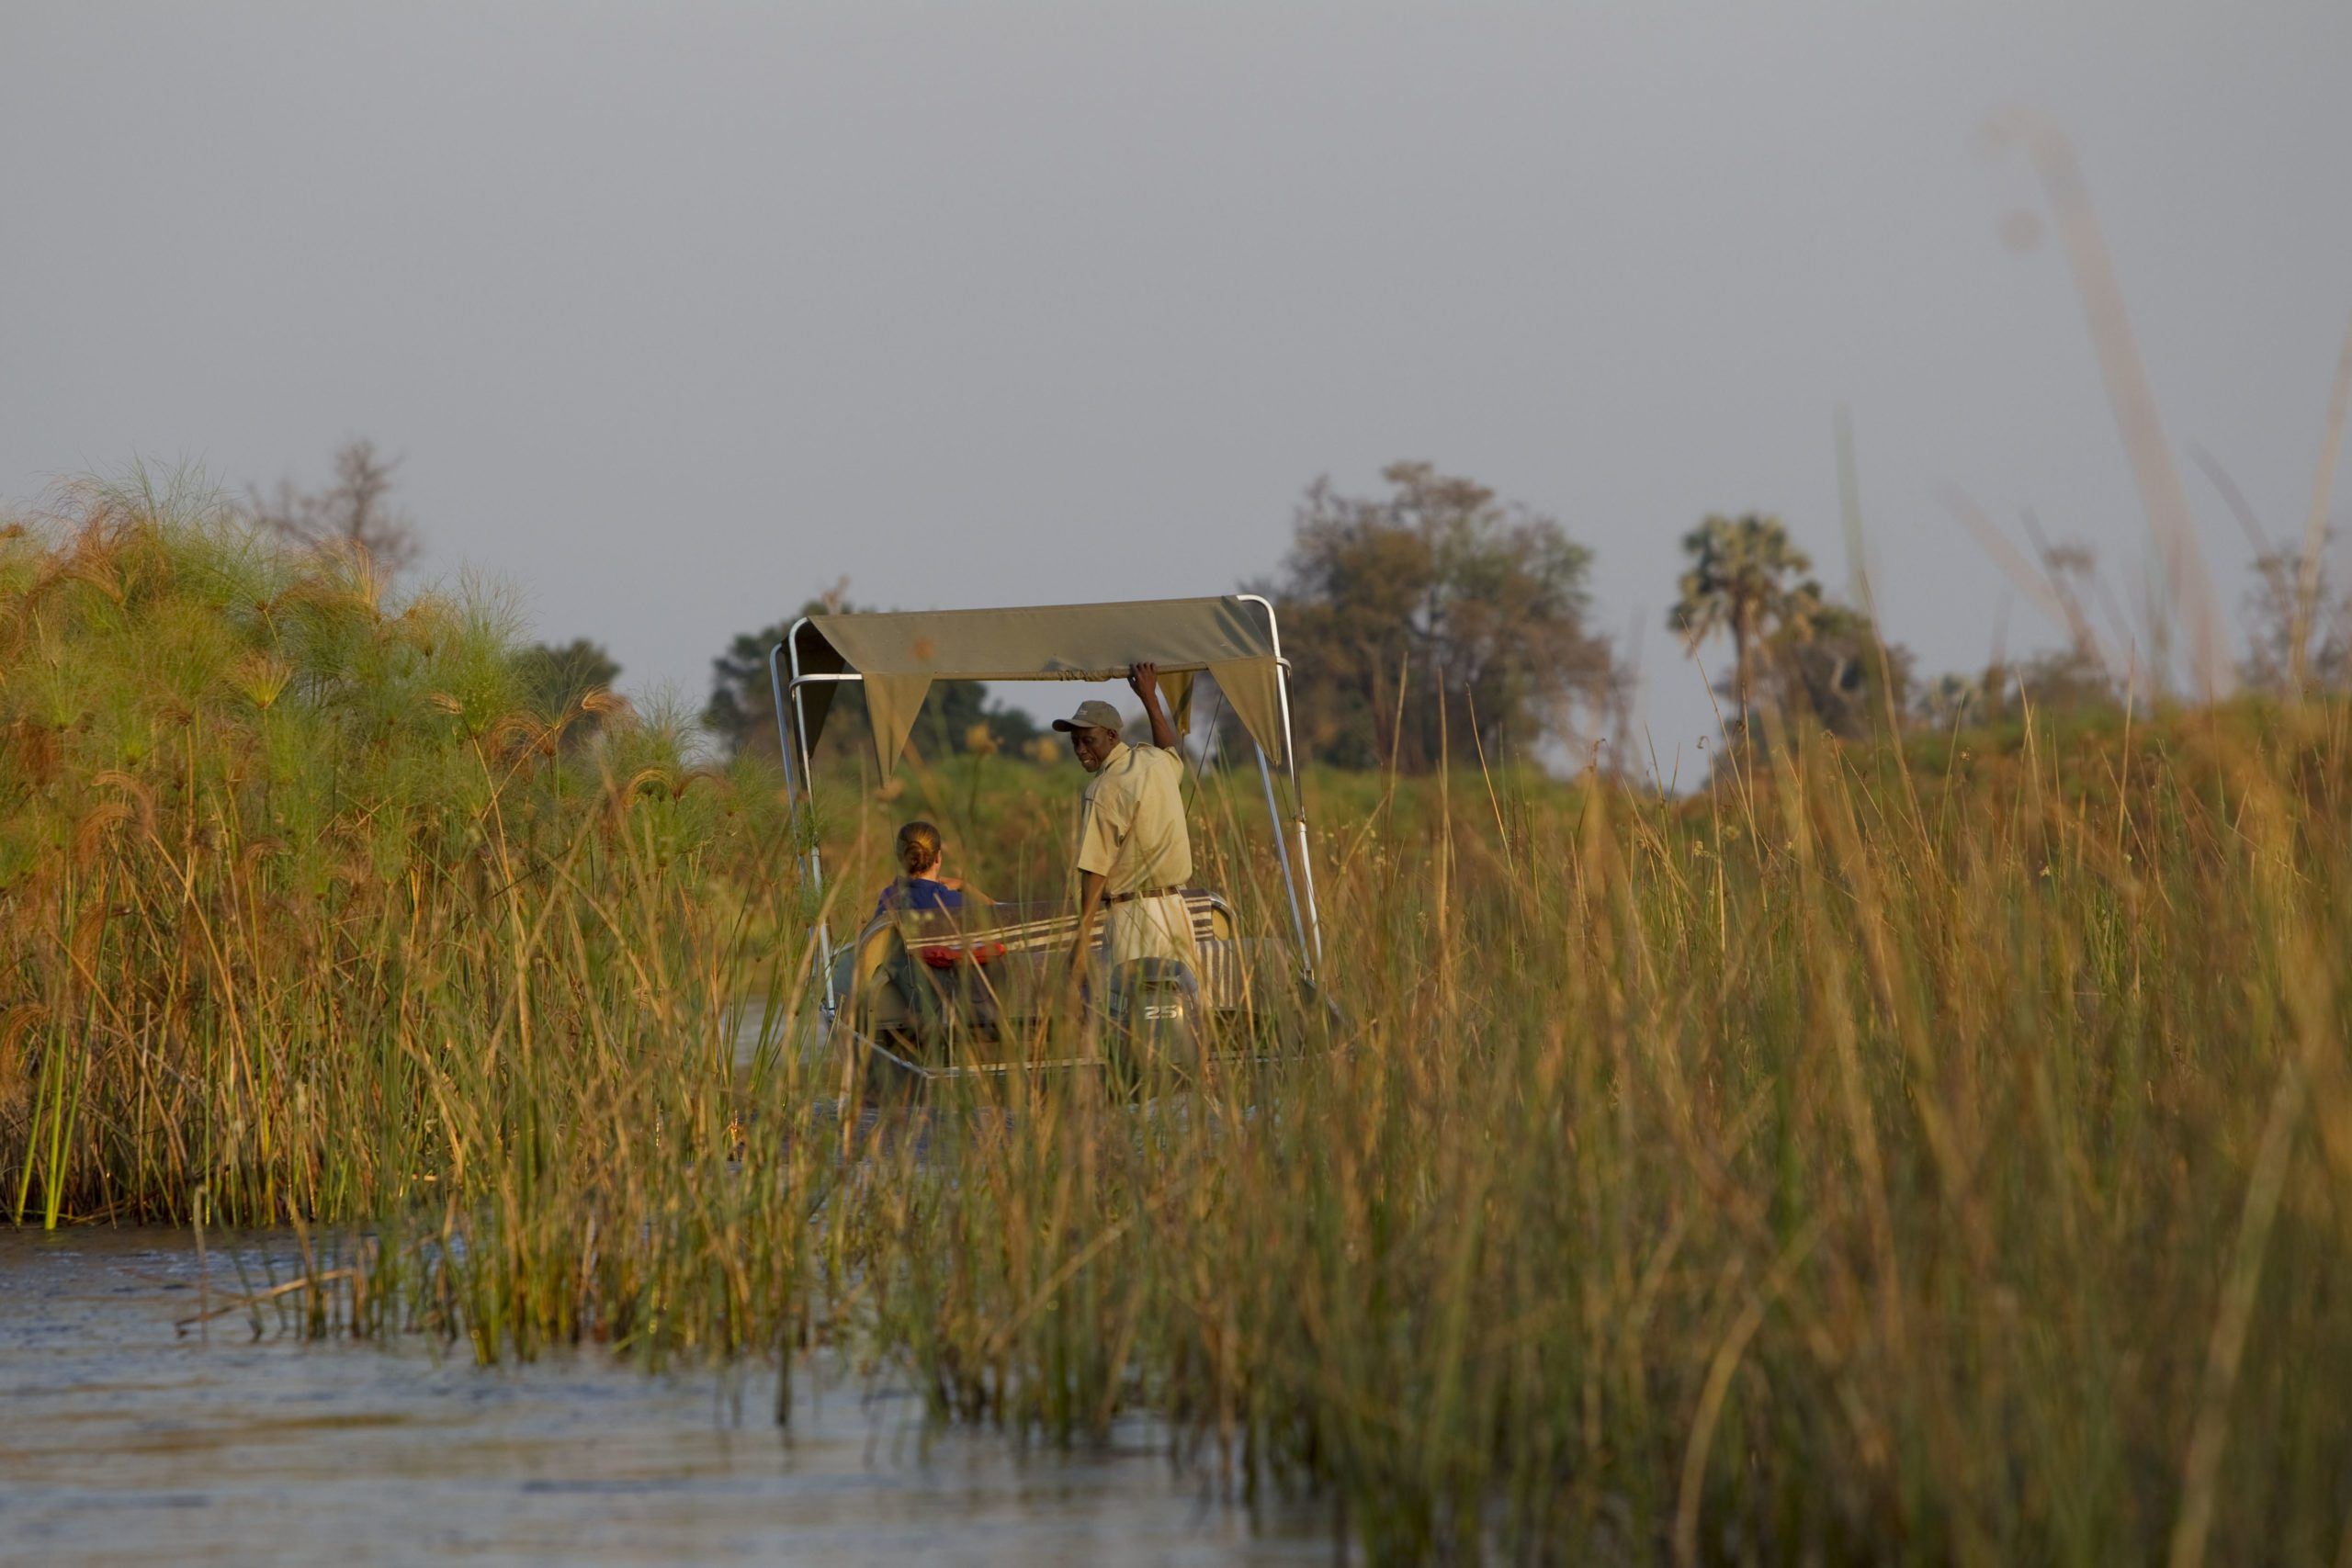 water safari in the okavanga delta seen on our Botswana safari